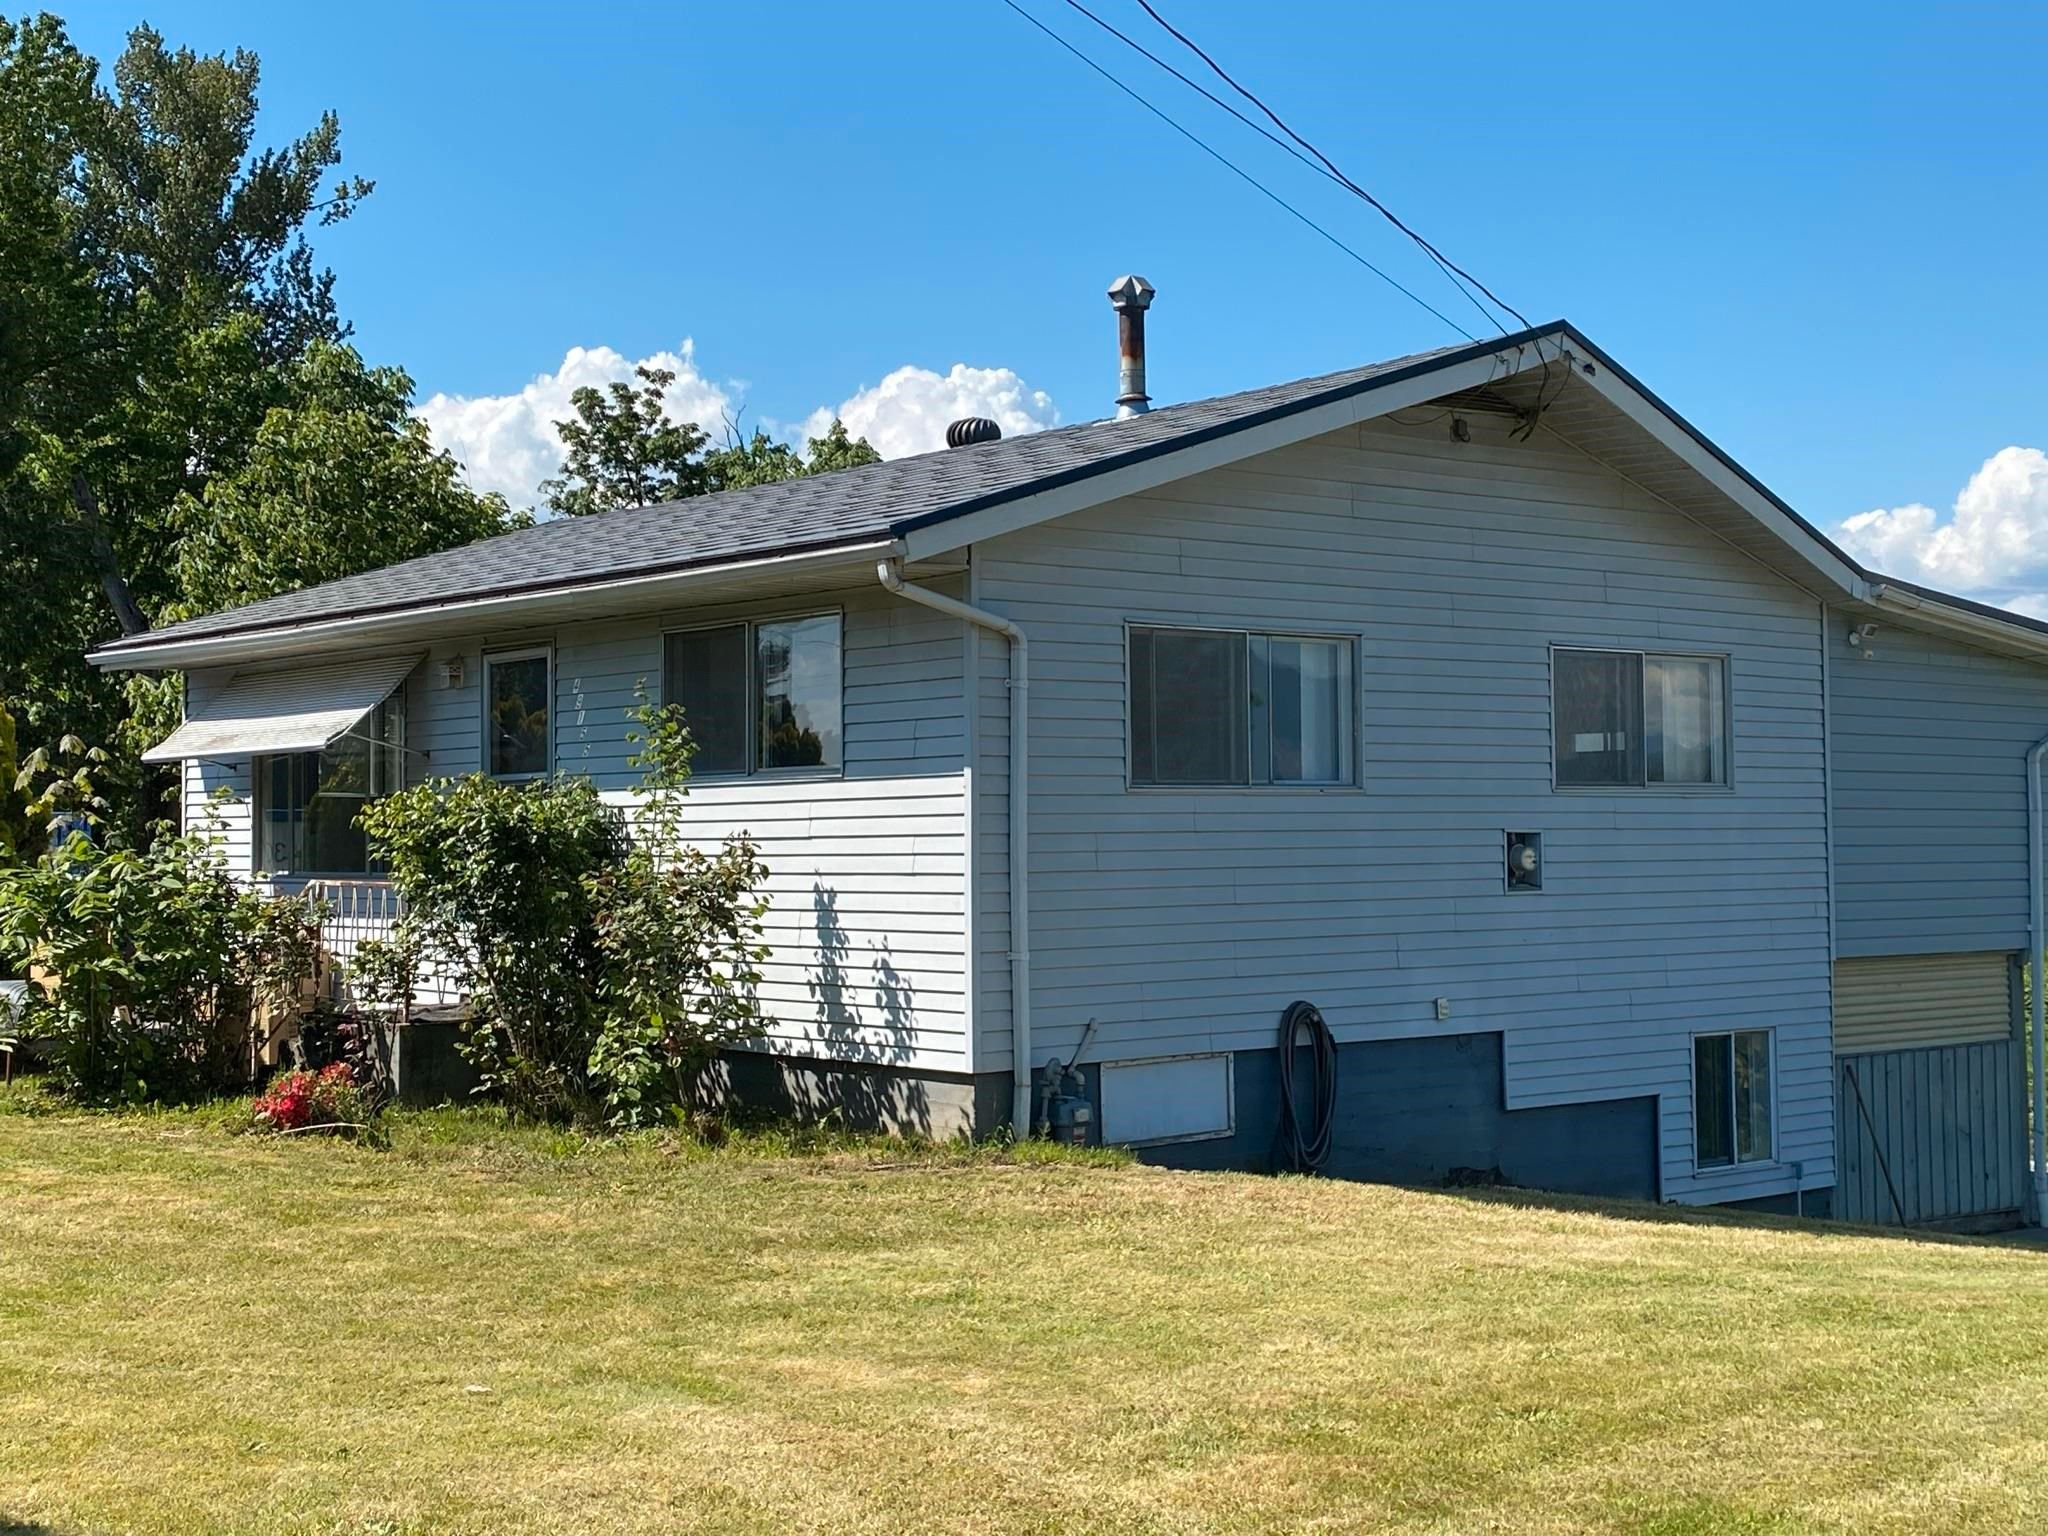 Main Photo: 49155 YALE Road in Chilliwack: East Chilliwack House for sale : MLS®# R2609756